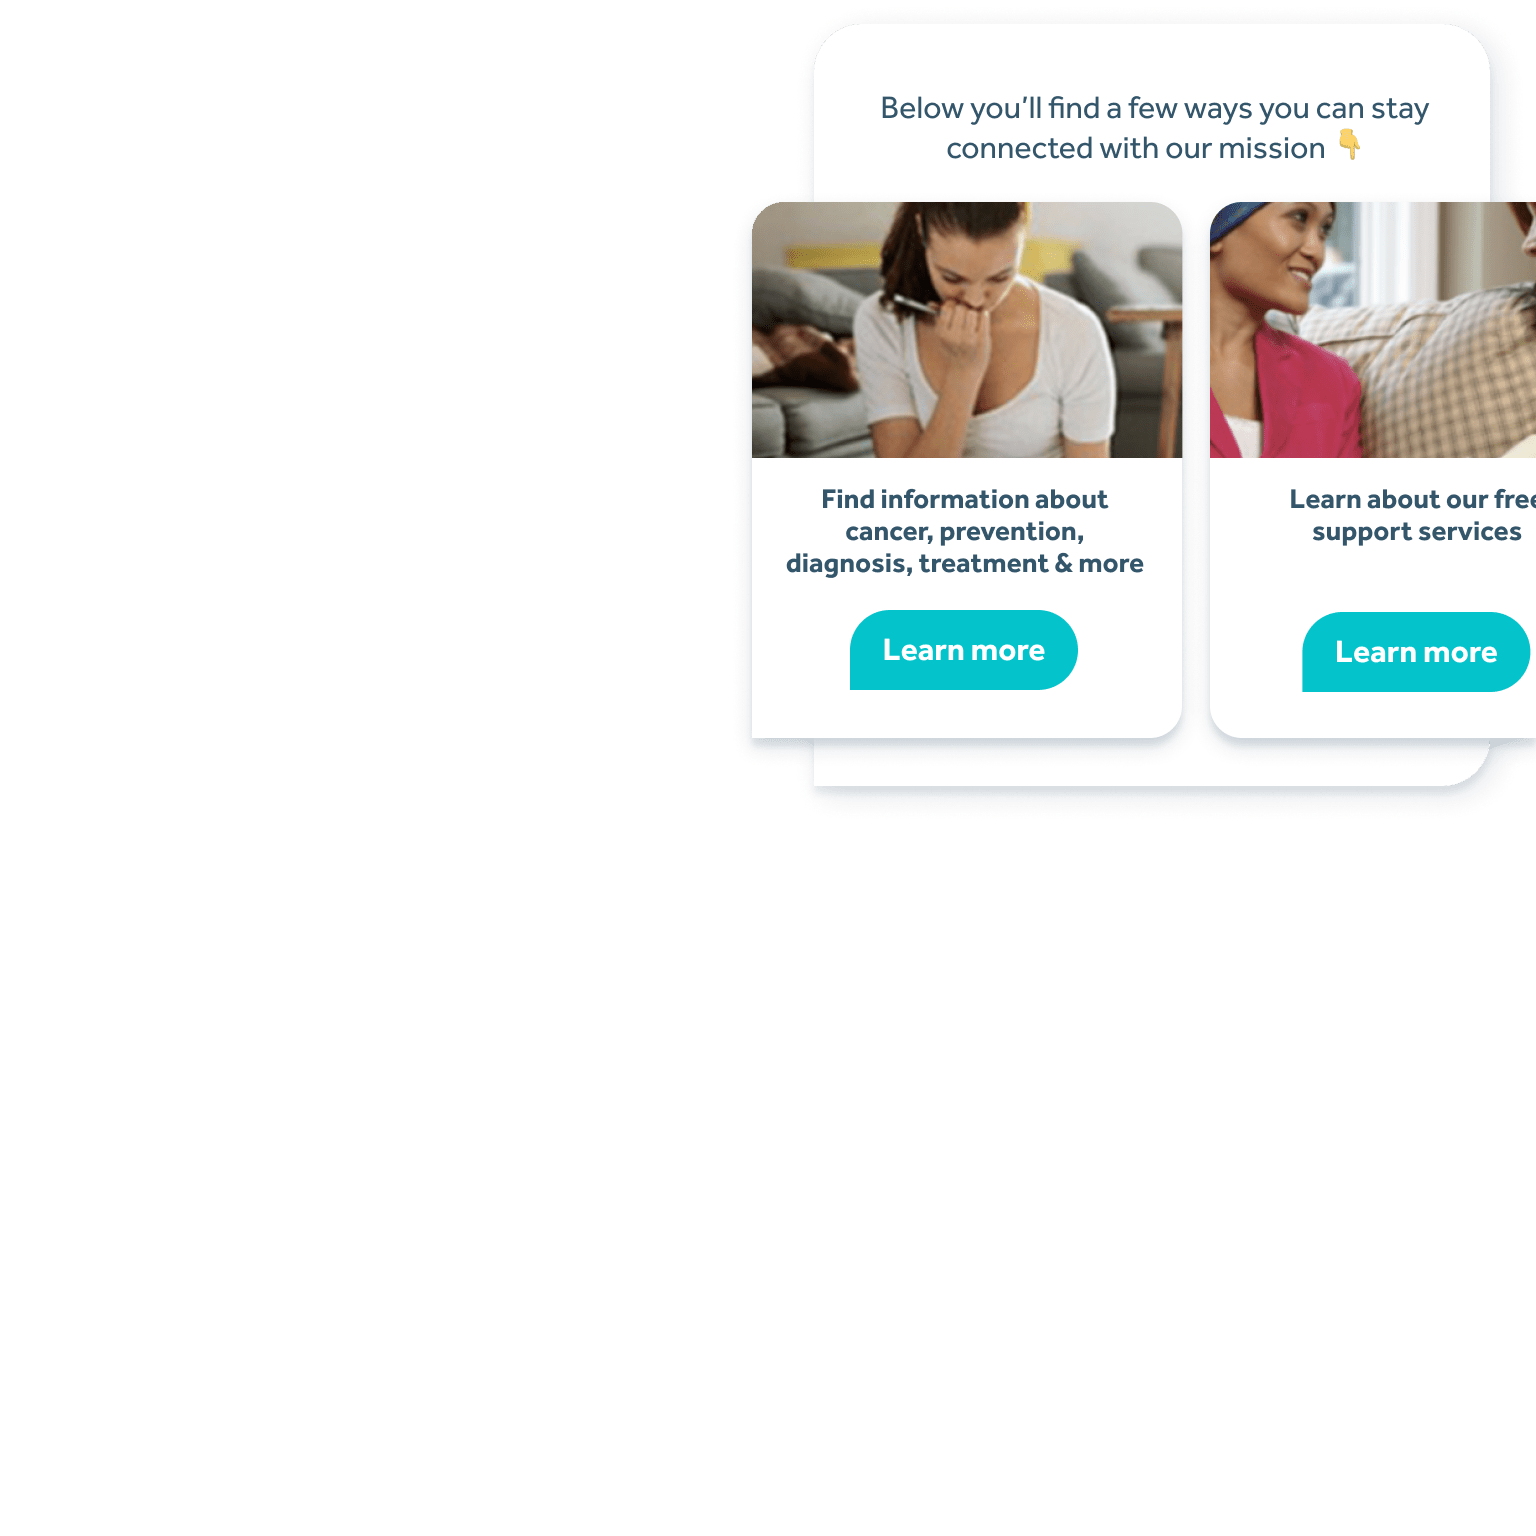 Conversational Messaging Solutions Example